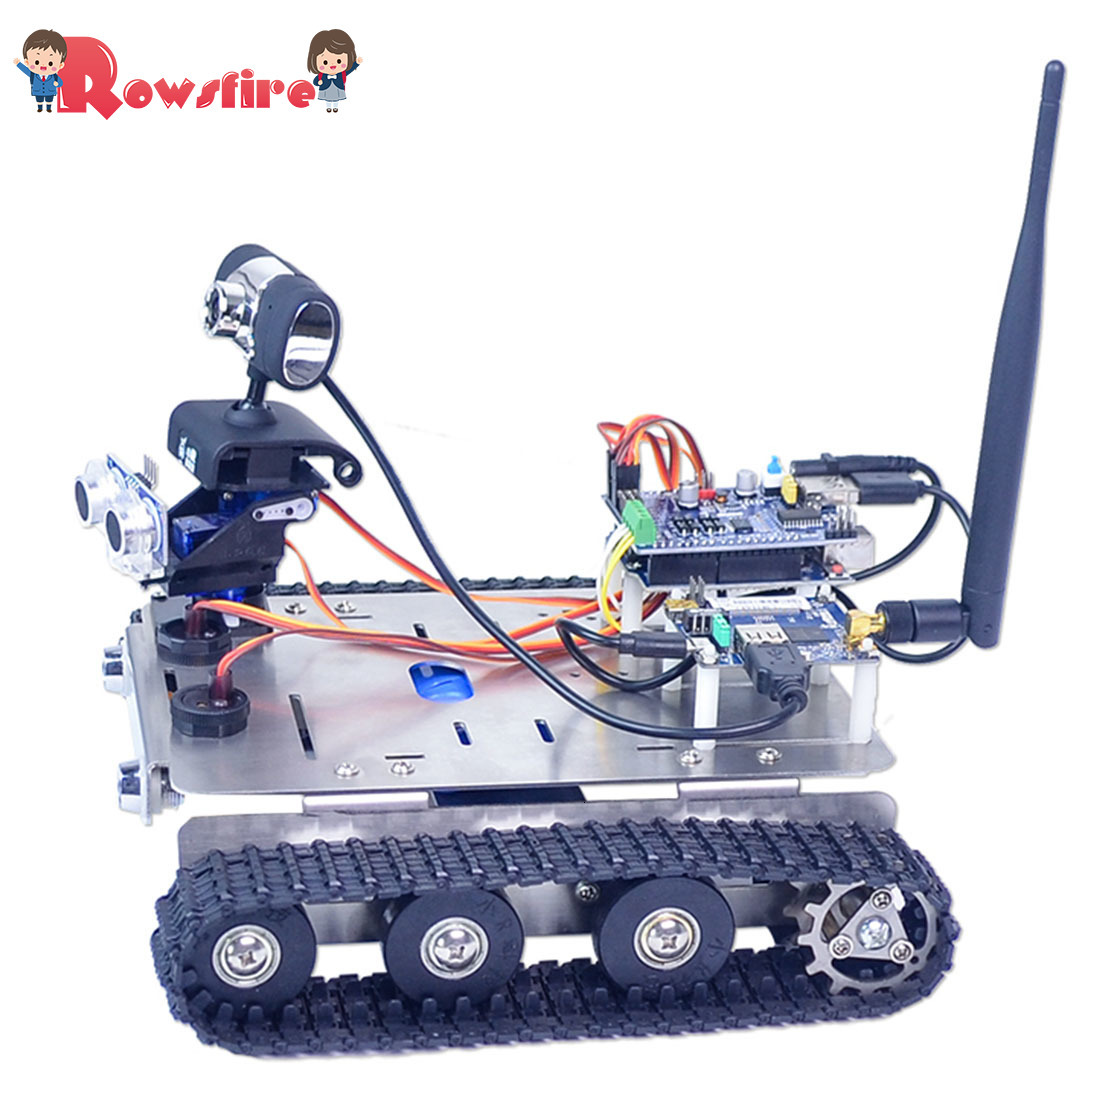 DIY Wifi + Bluetooth Stainless Steel Chassis Track Tank Steam Educational Car With Graphic Programming XR BLOCK Linux Toys